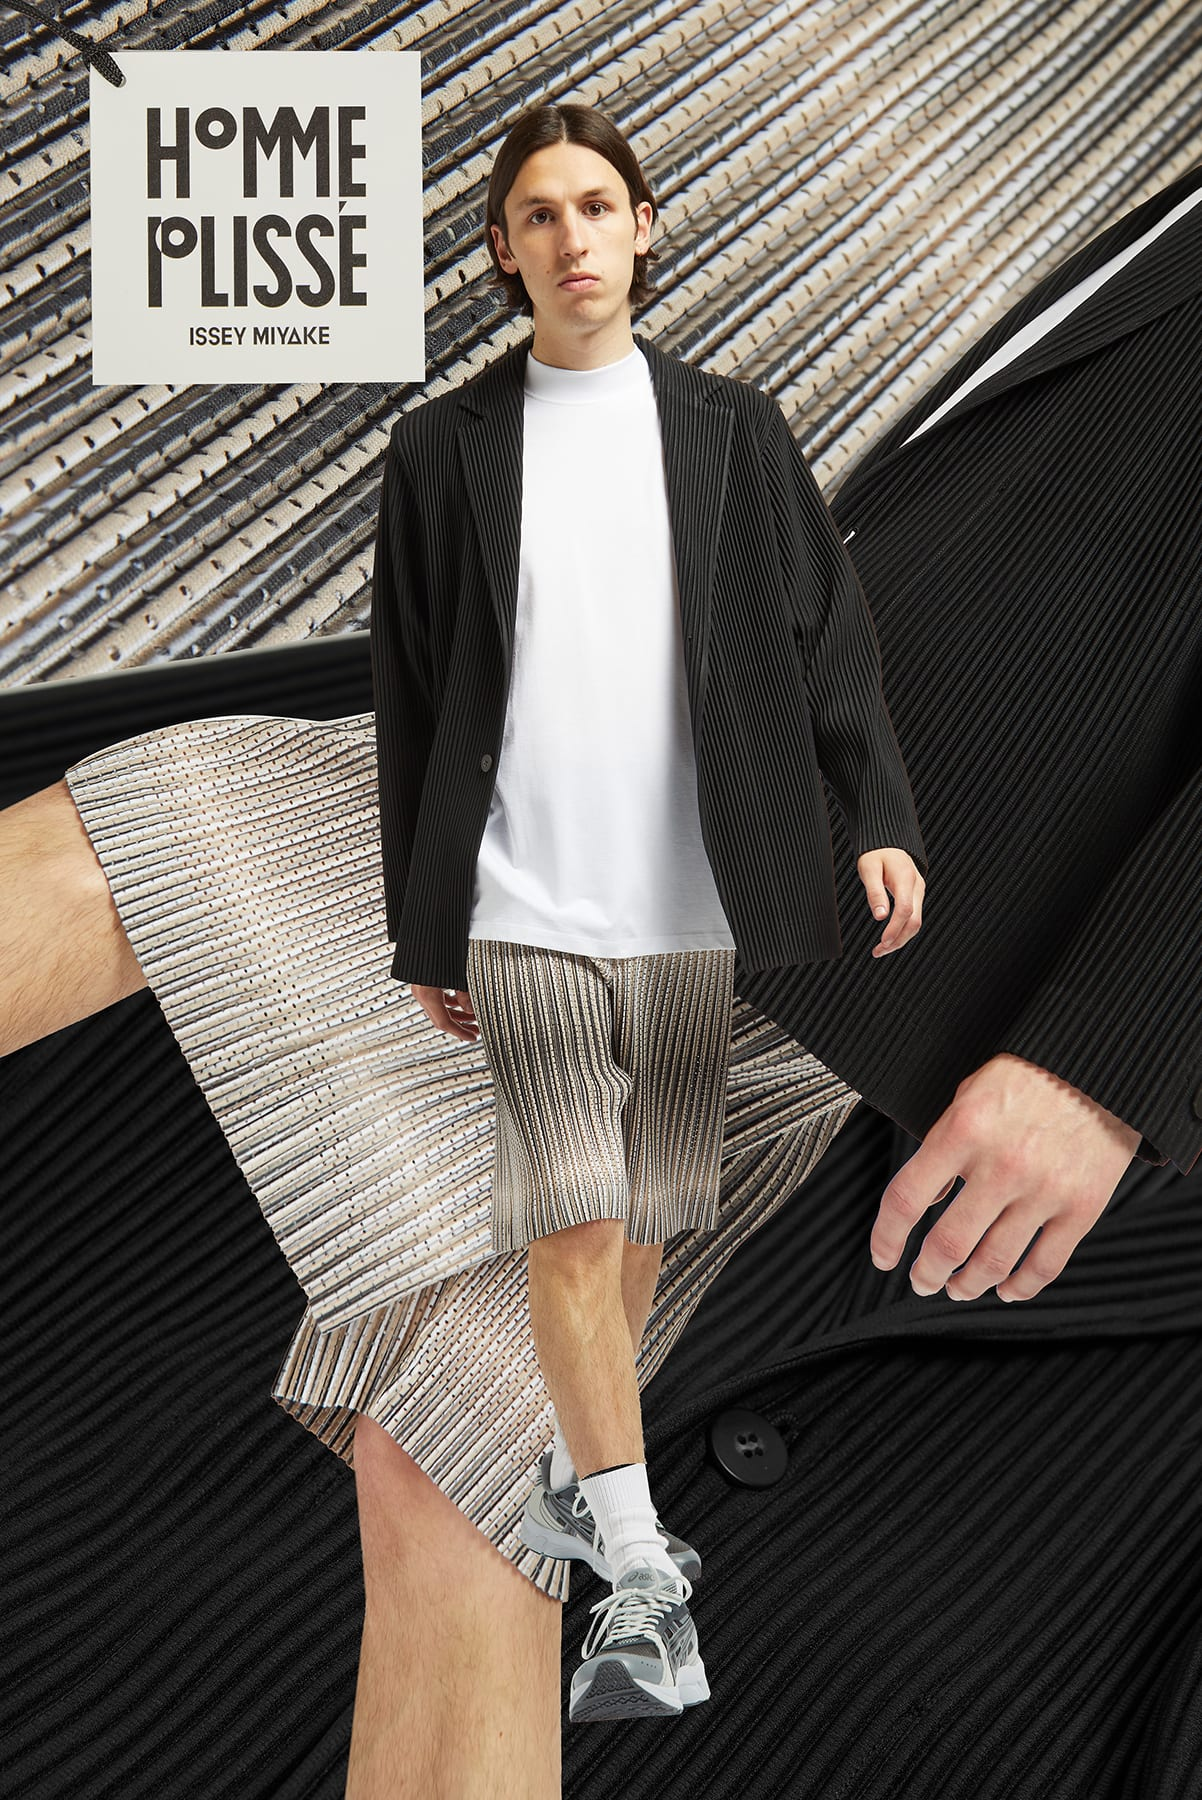 Curated 008 | Short-Stock - Model wears Homme Plisse Issey Miyake Hologram Mesh Shorts